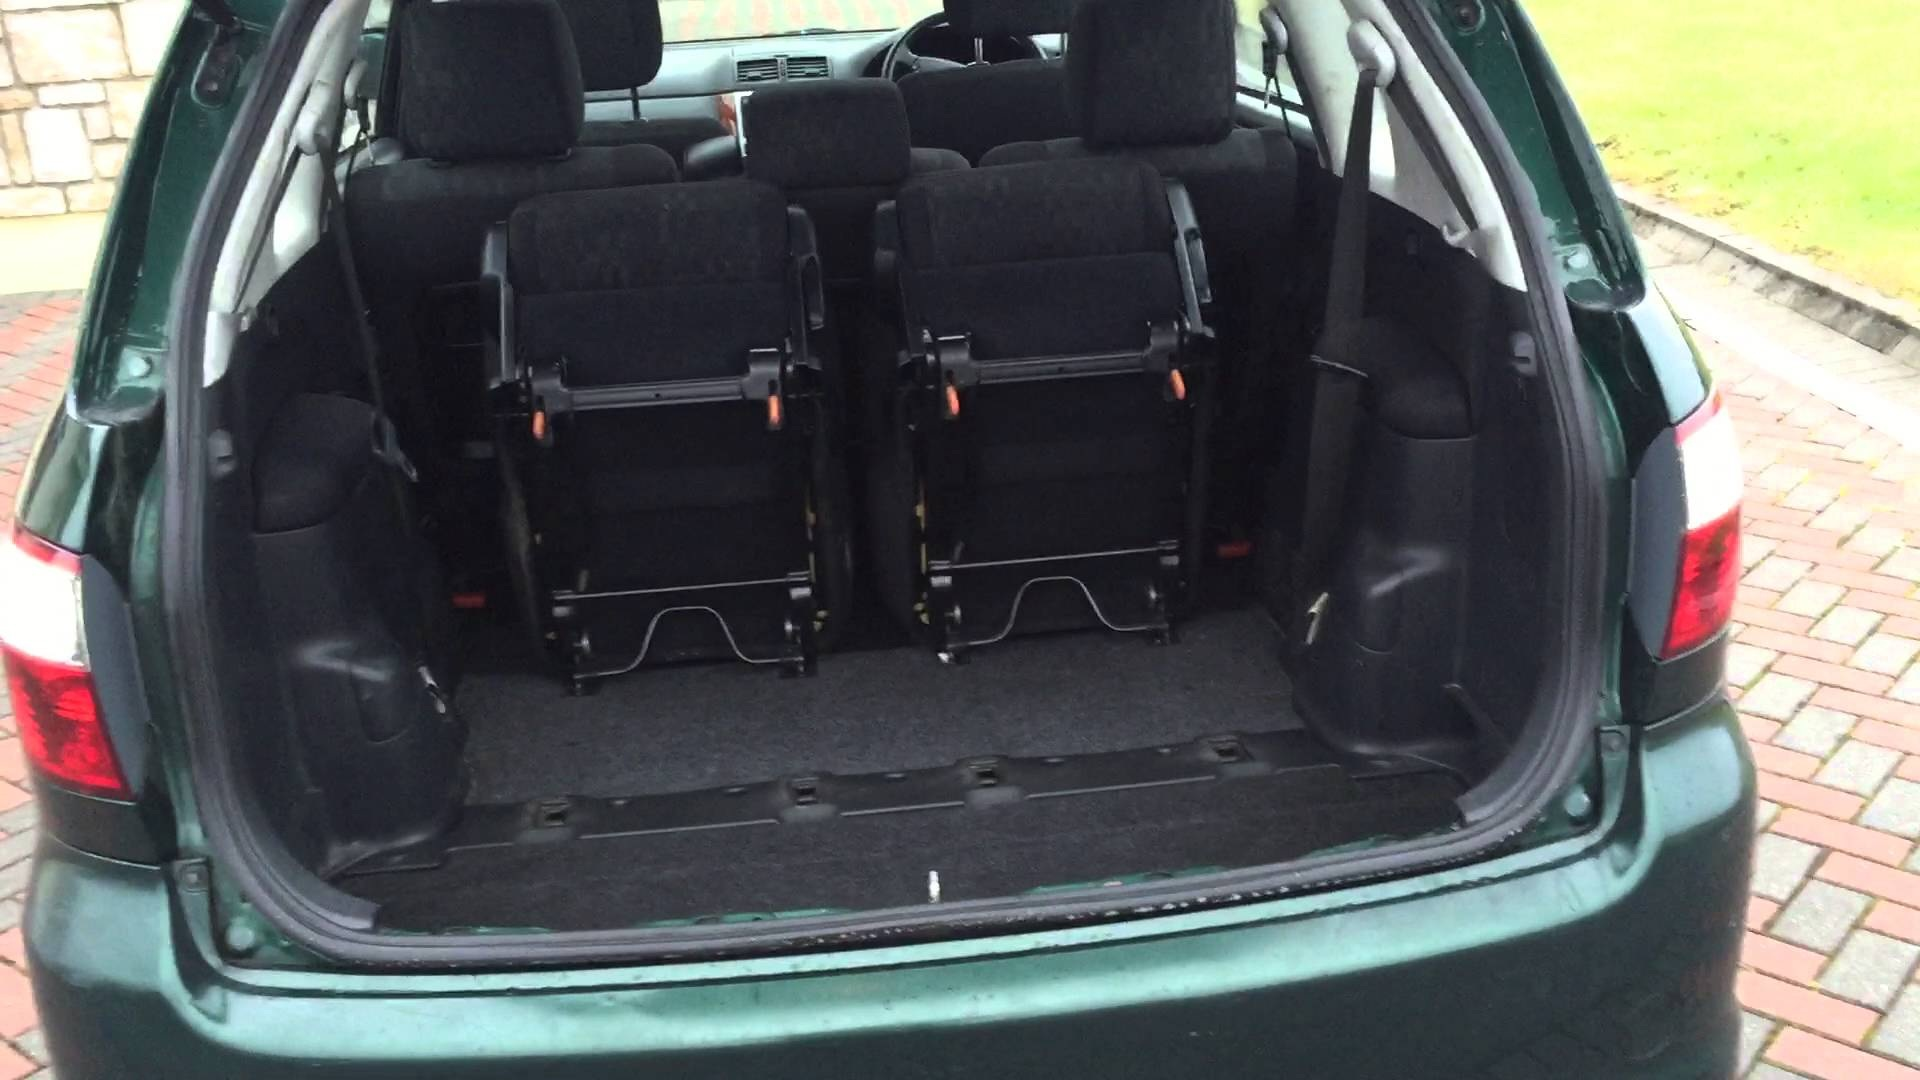 Cars Sale Done Deal Unique for Sale On Donedeal 2005 toyota Avensis 7 Seater Youtube – Car